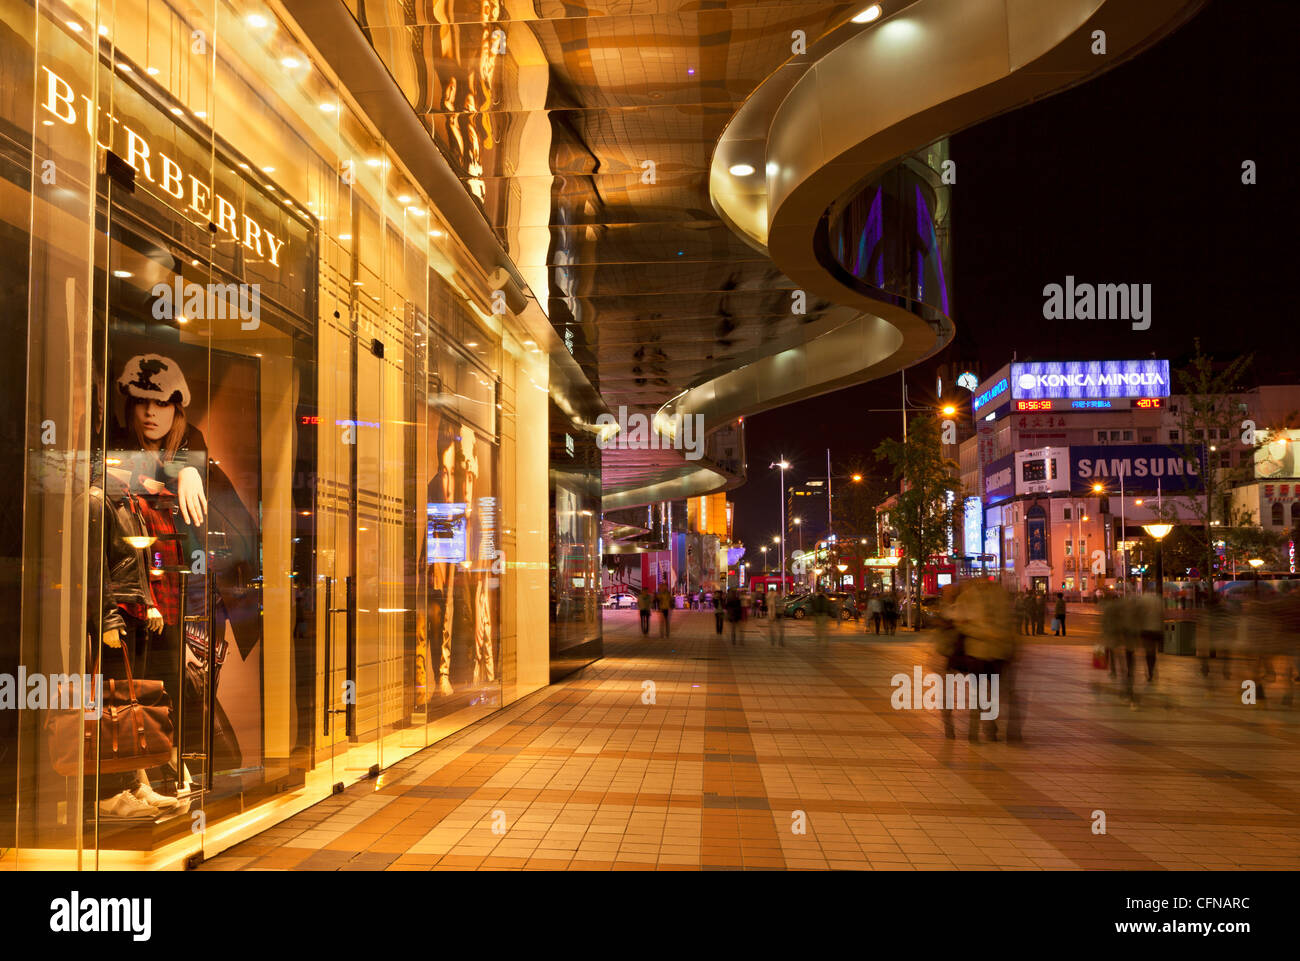 Chinese department store with people shopping, Wanfujing Dajie, Central Beijing, China, Asia - Stock Image